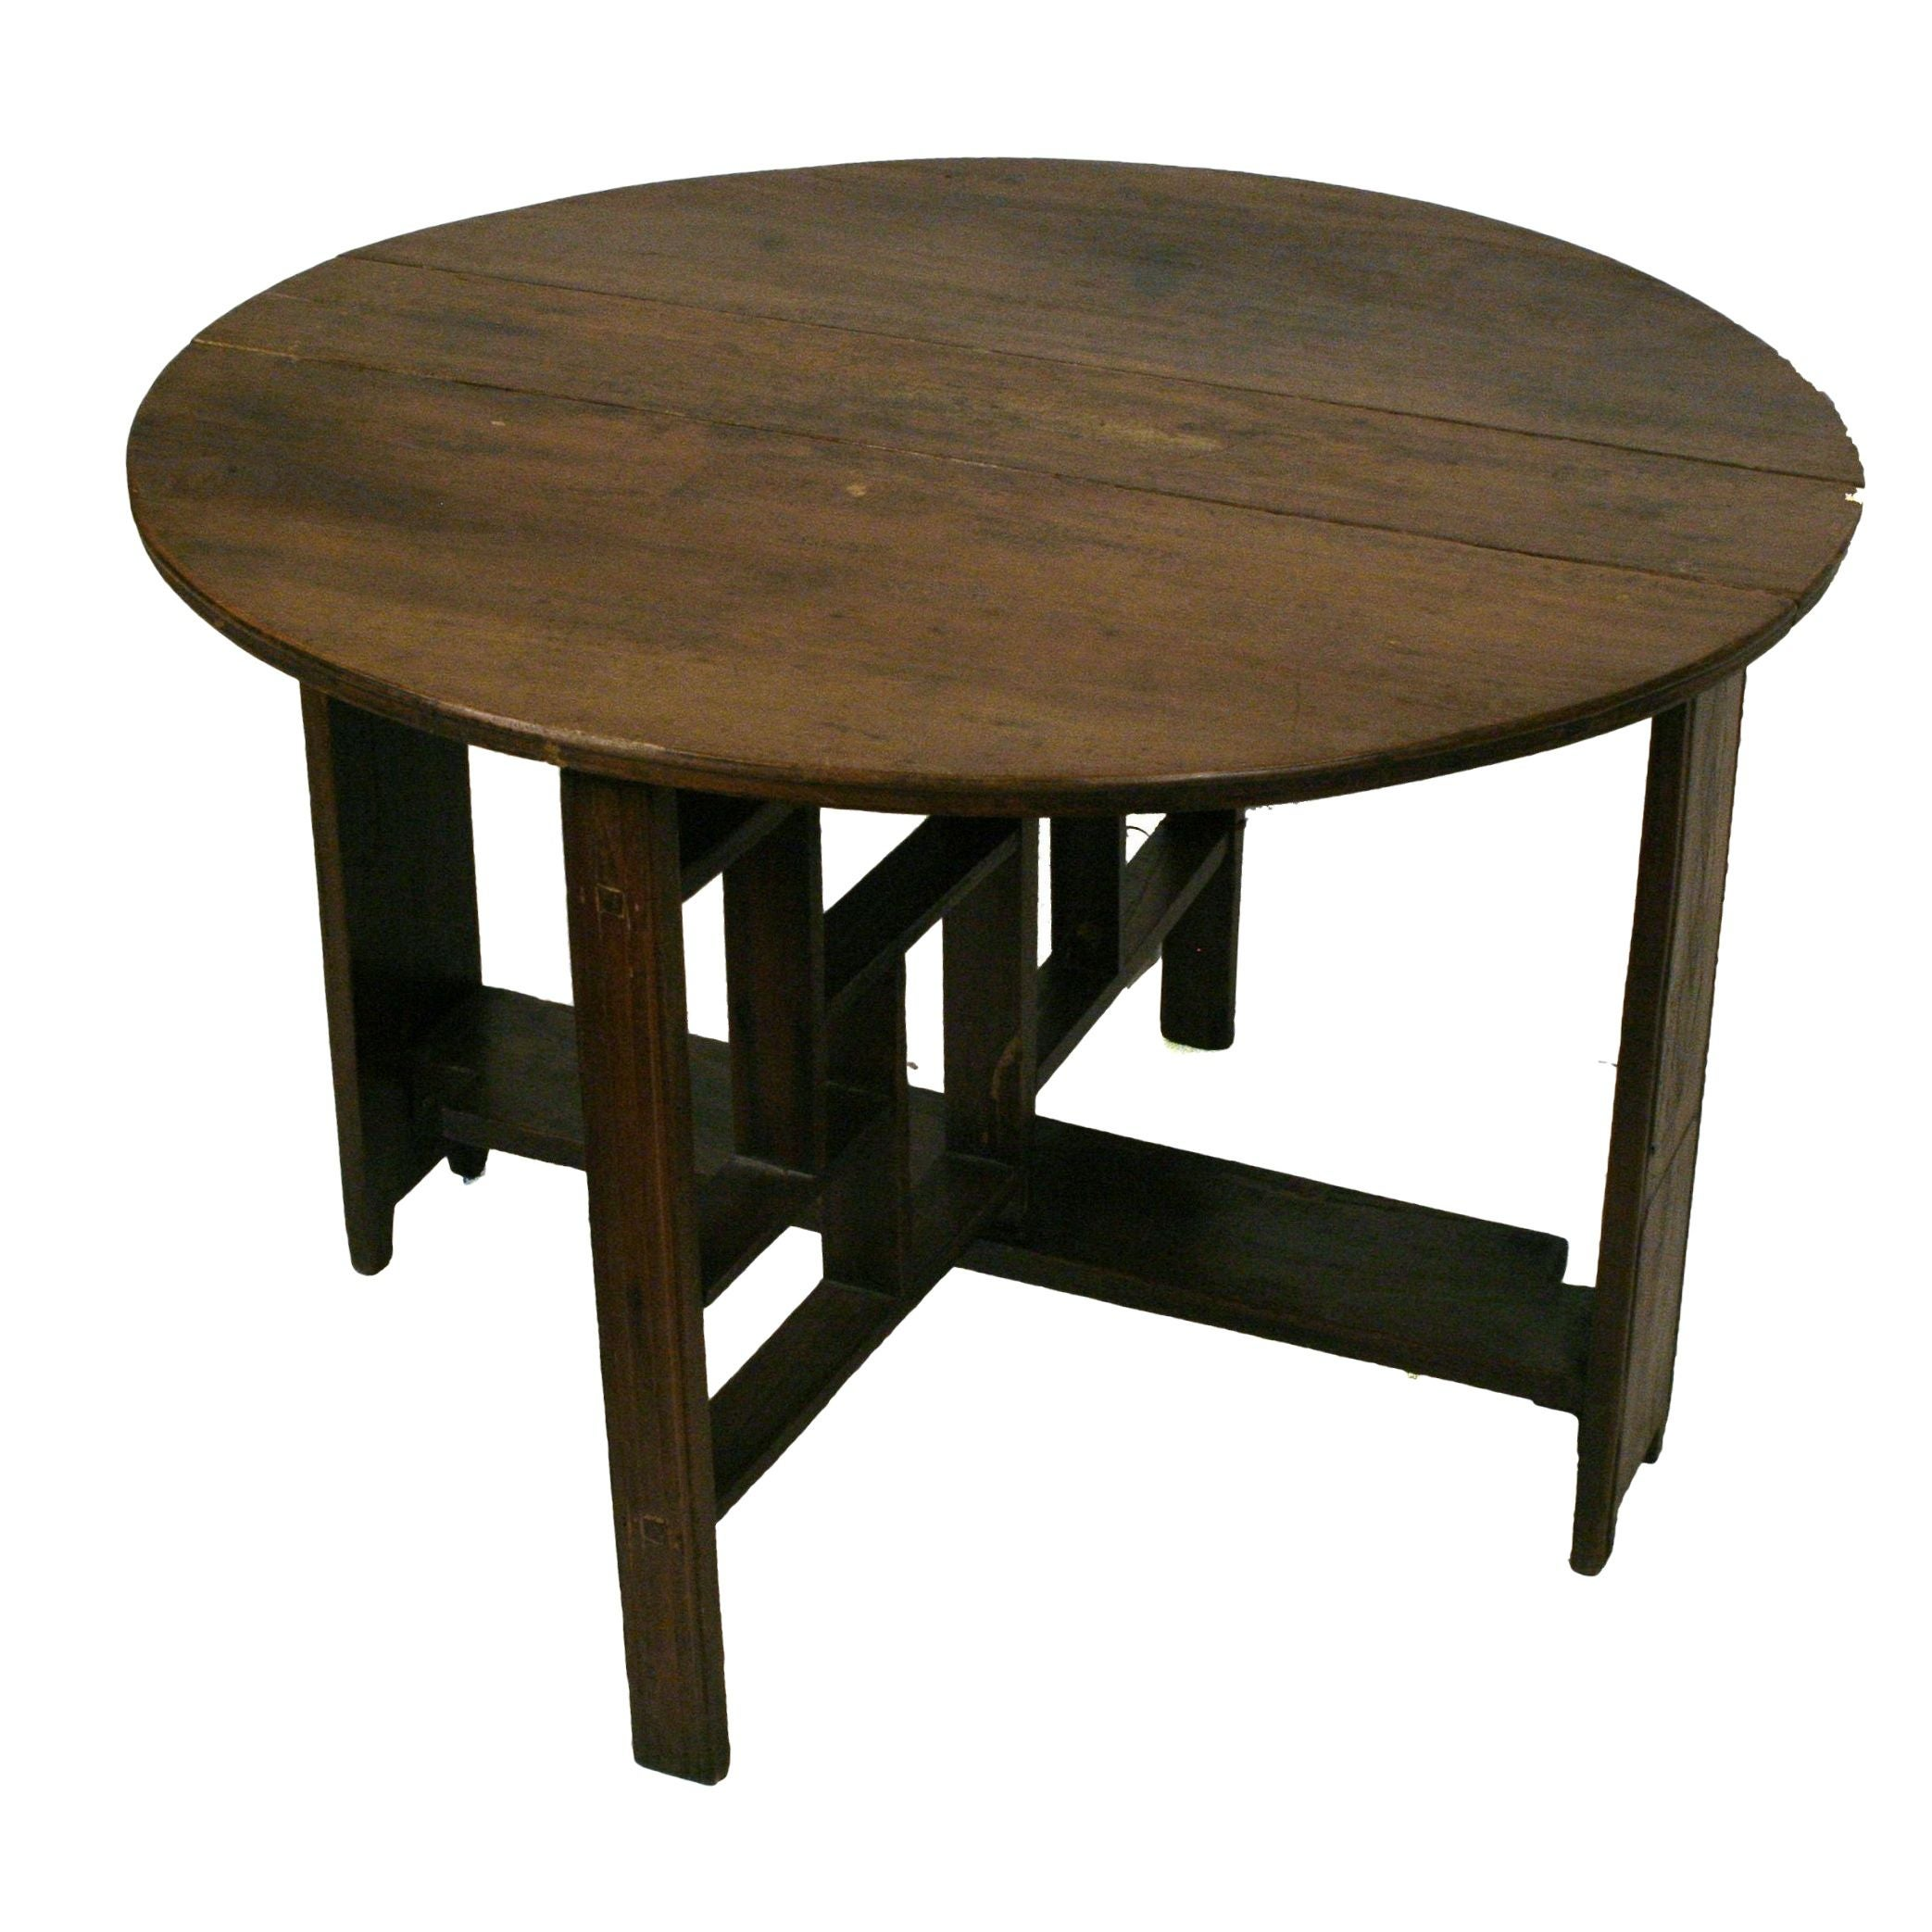 Shanxi elmwood round folding coffee table chairish Folding coffee table